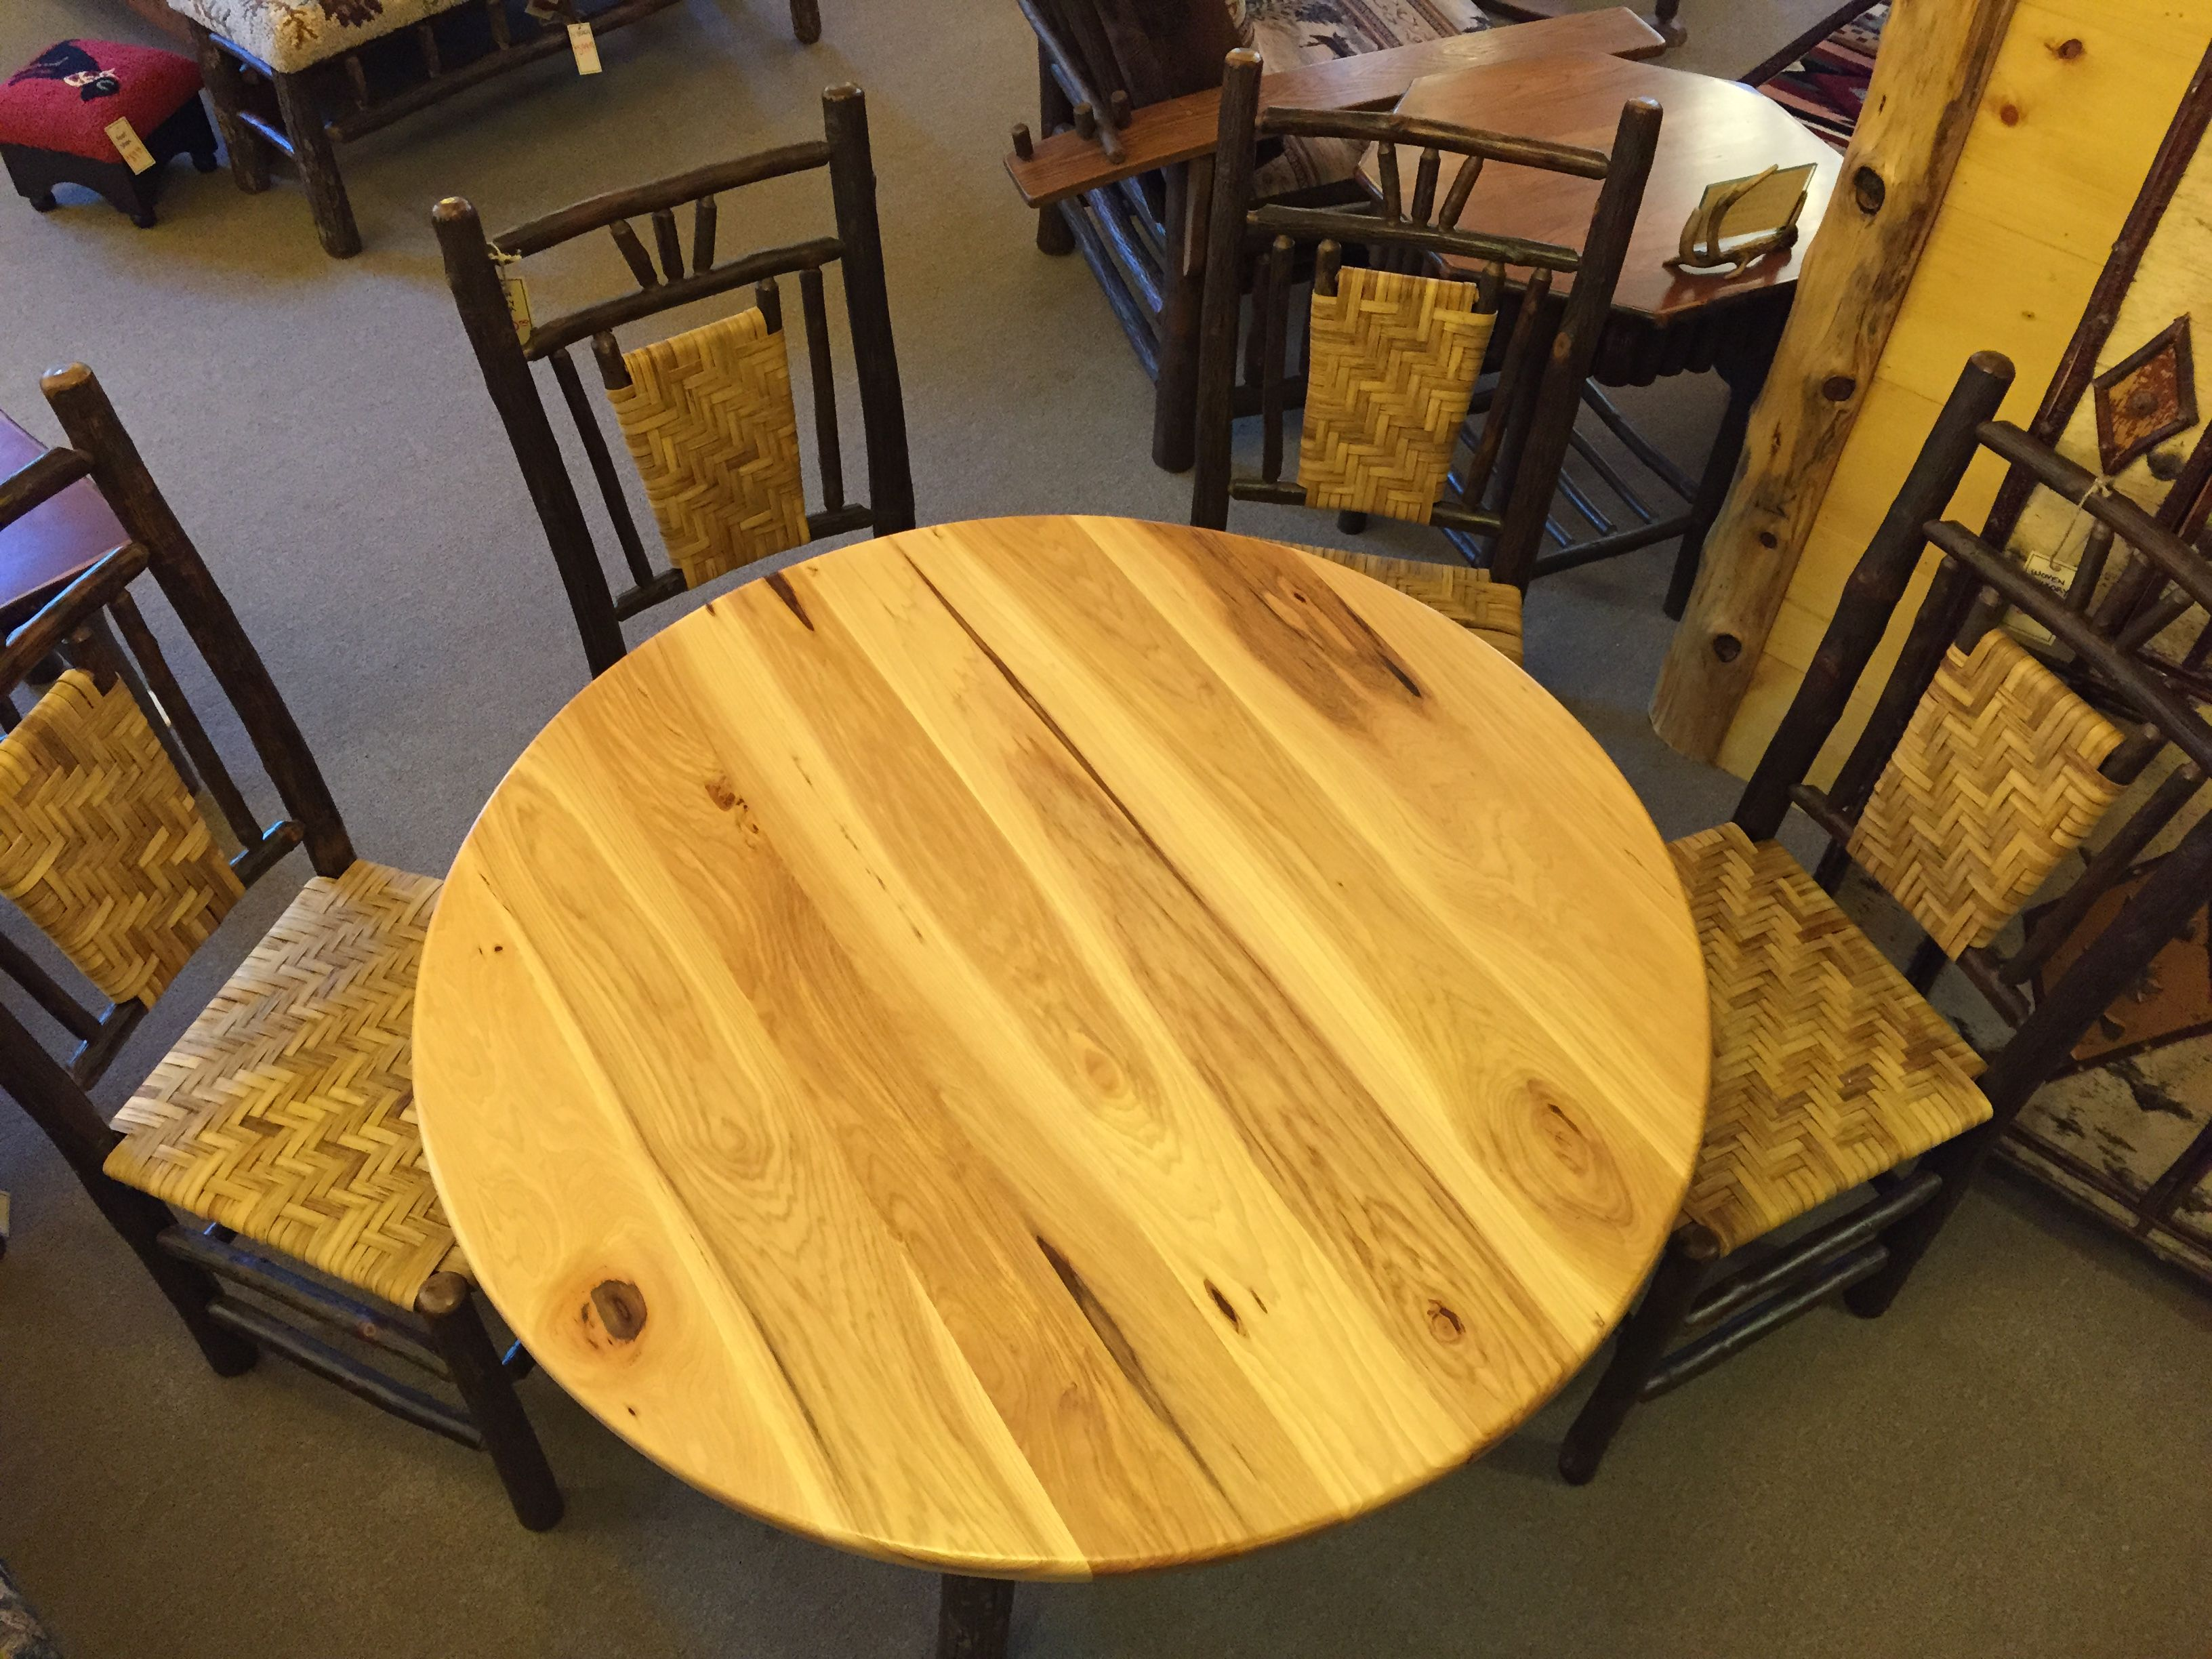 All Hickory Dining Table And Hickory Chairs With Woven Details Ohmrf Familyowned Rusticfurniture Handmade Rustic Dining Set Rustic Furniture Hickory Chair